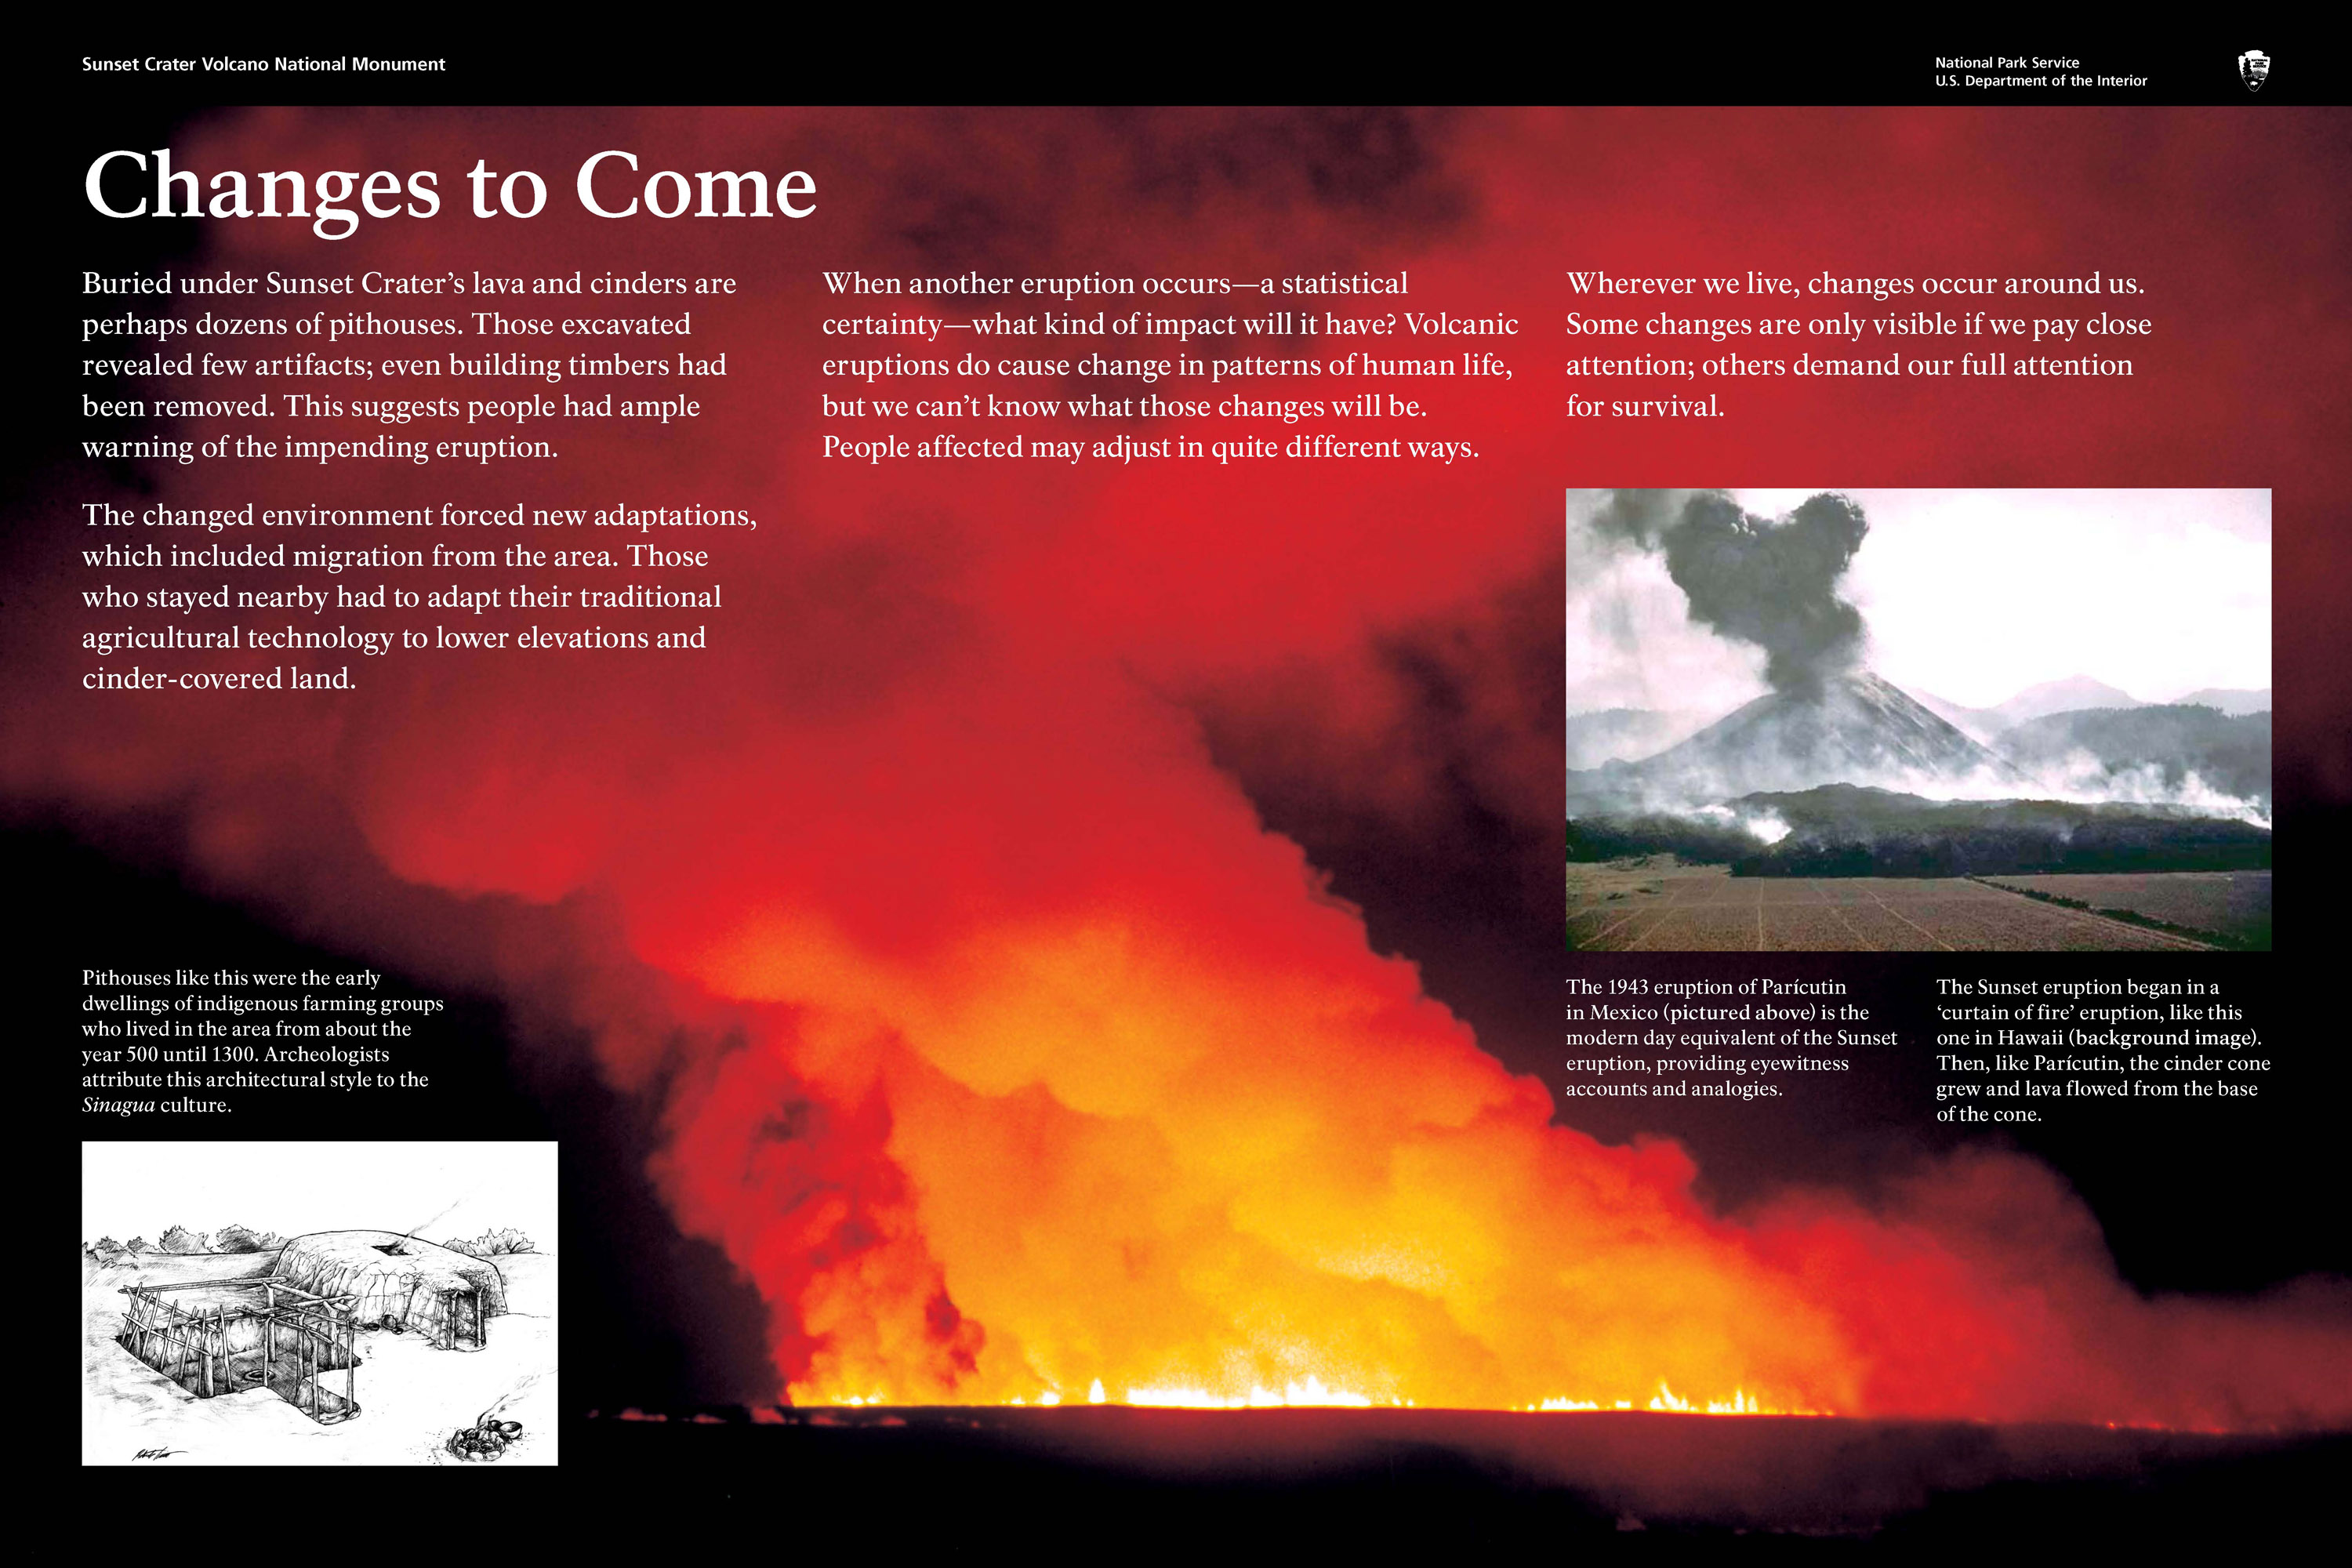 The eruption of Sunset Crater impacted prehistoric lives and caused adaptation, including migration